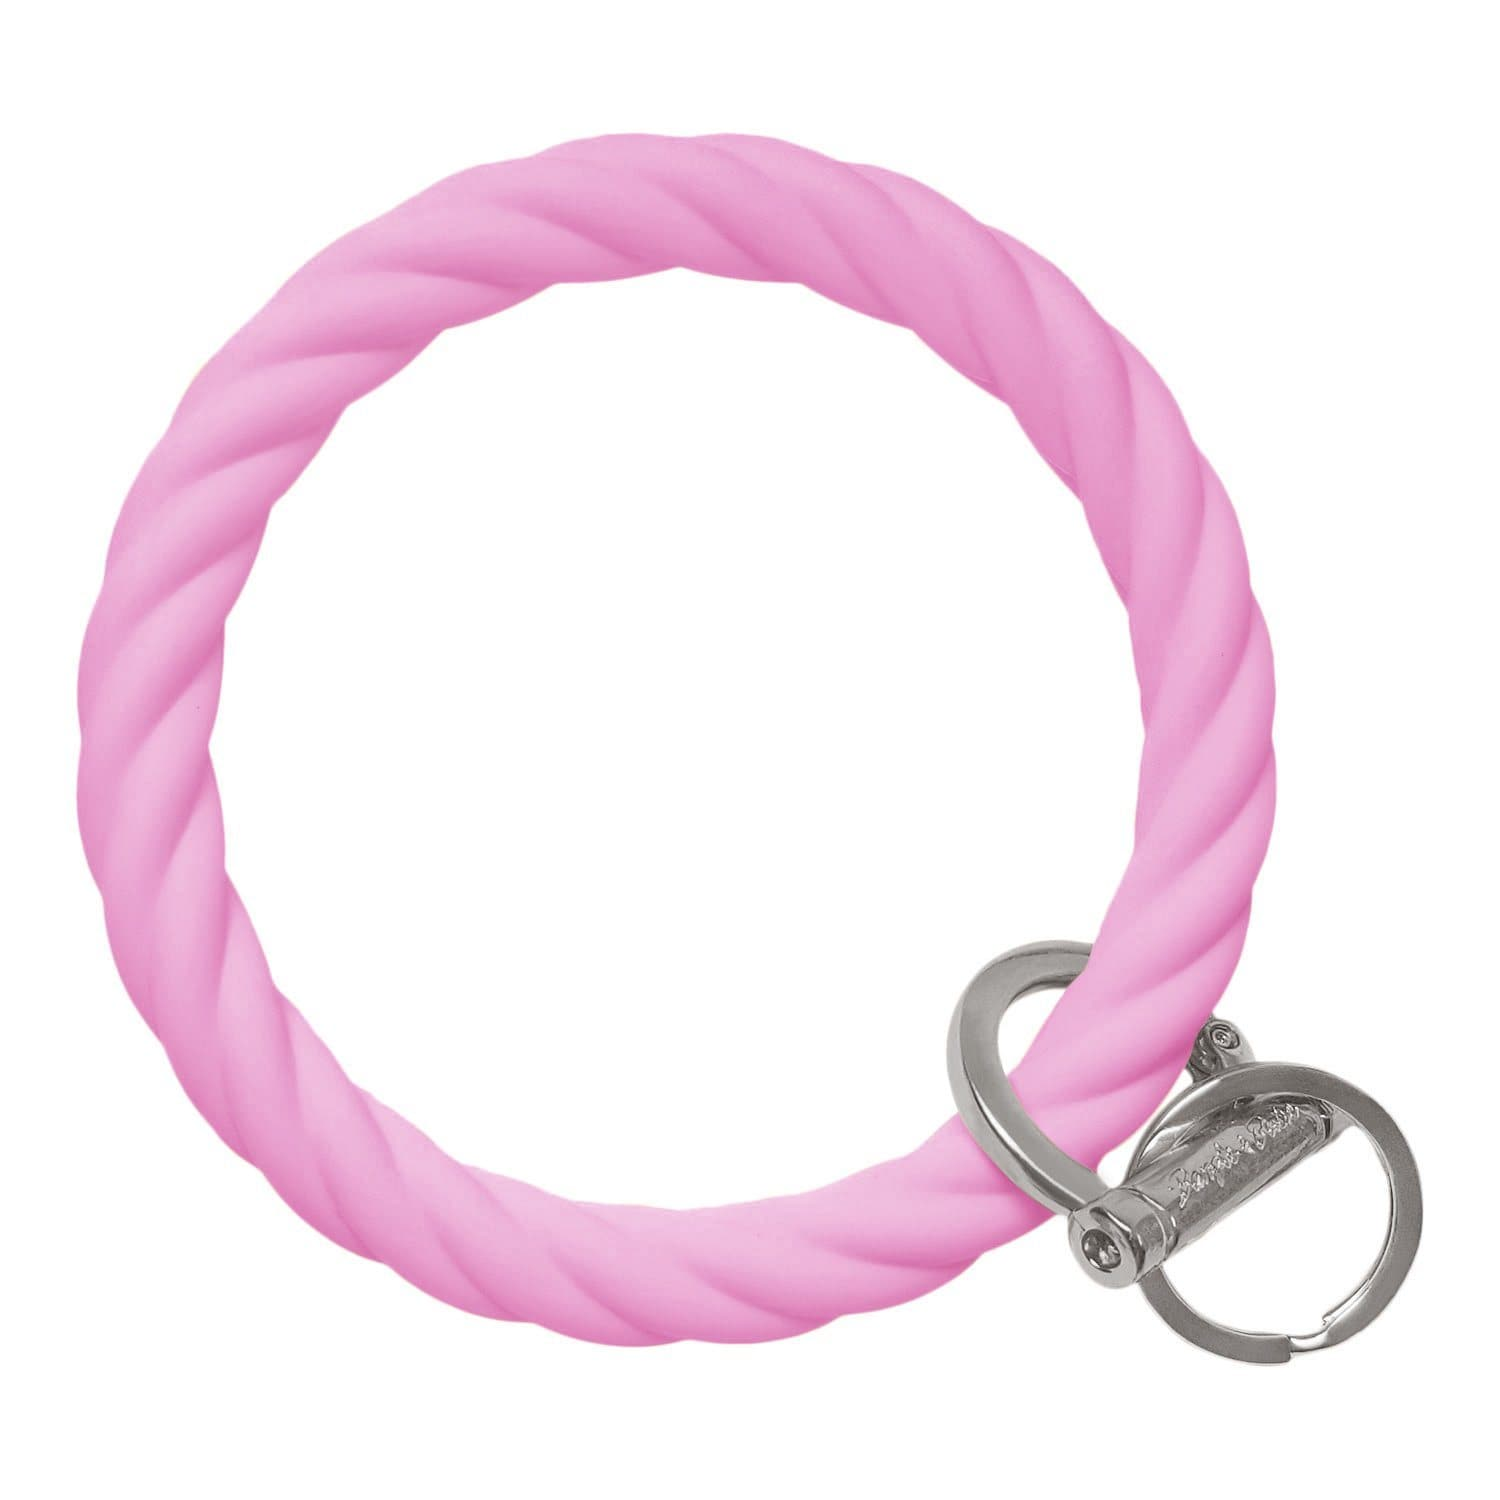 Twisted Bangle & Babe Bracelet Key Ring Twist - Bright Pink Silver